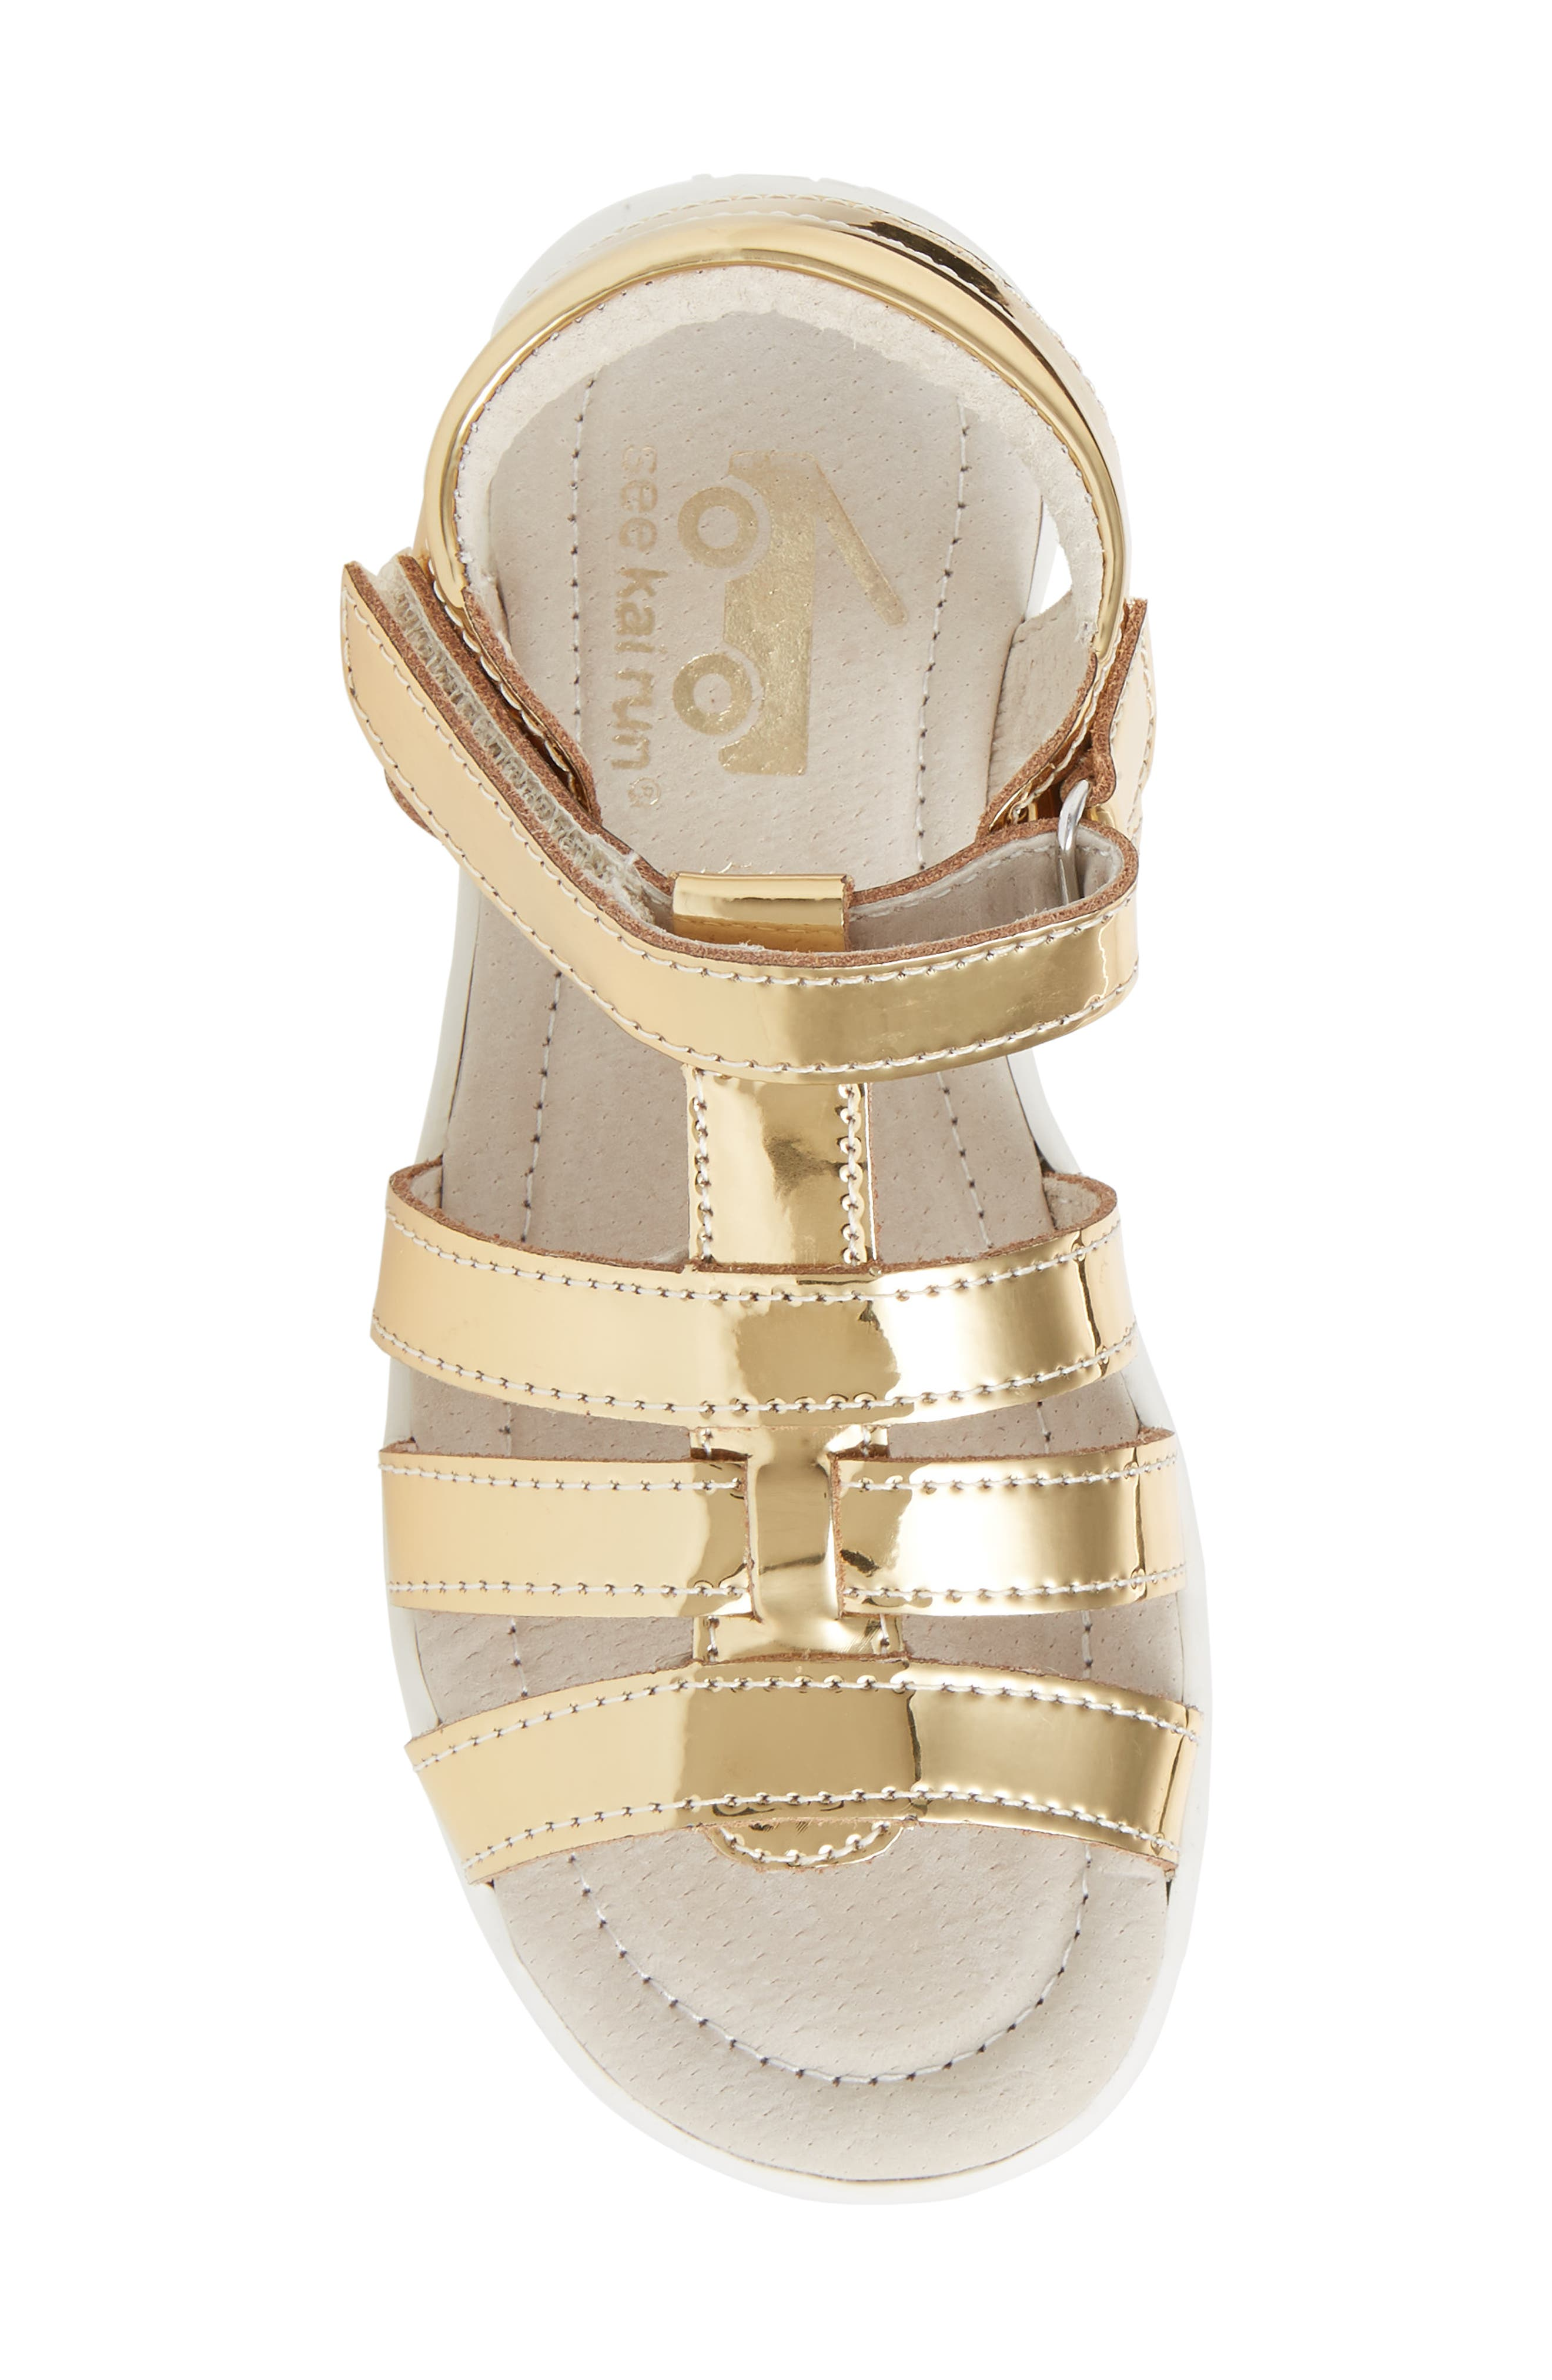 Fe Metallic Fisherman Sandal,                             Alternate thumbnail 5, color,                             Gold